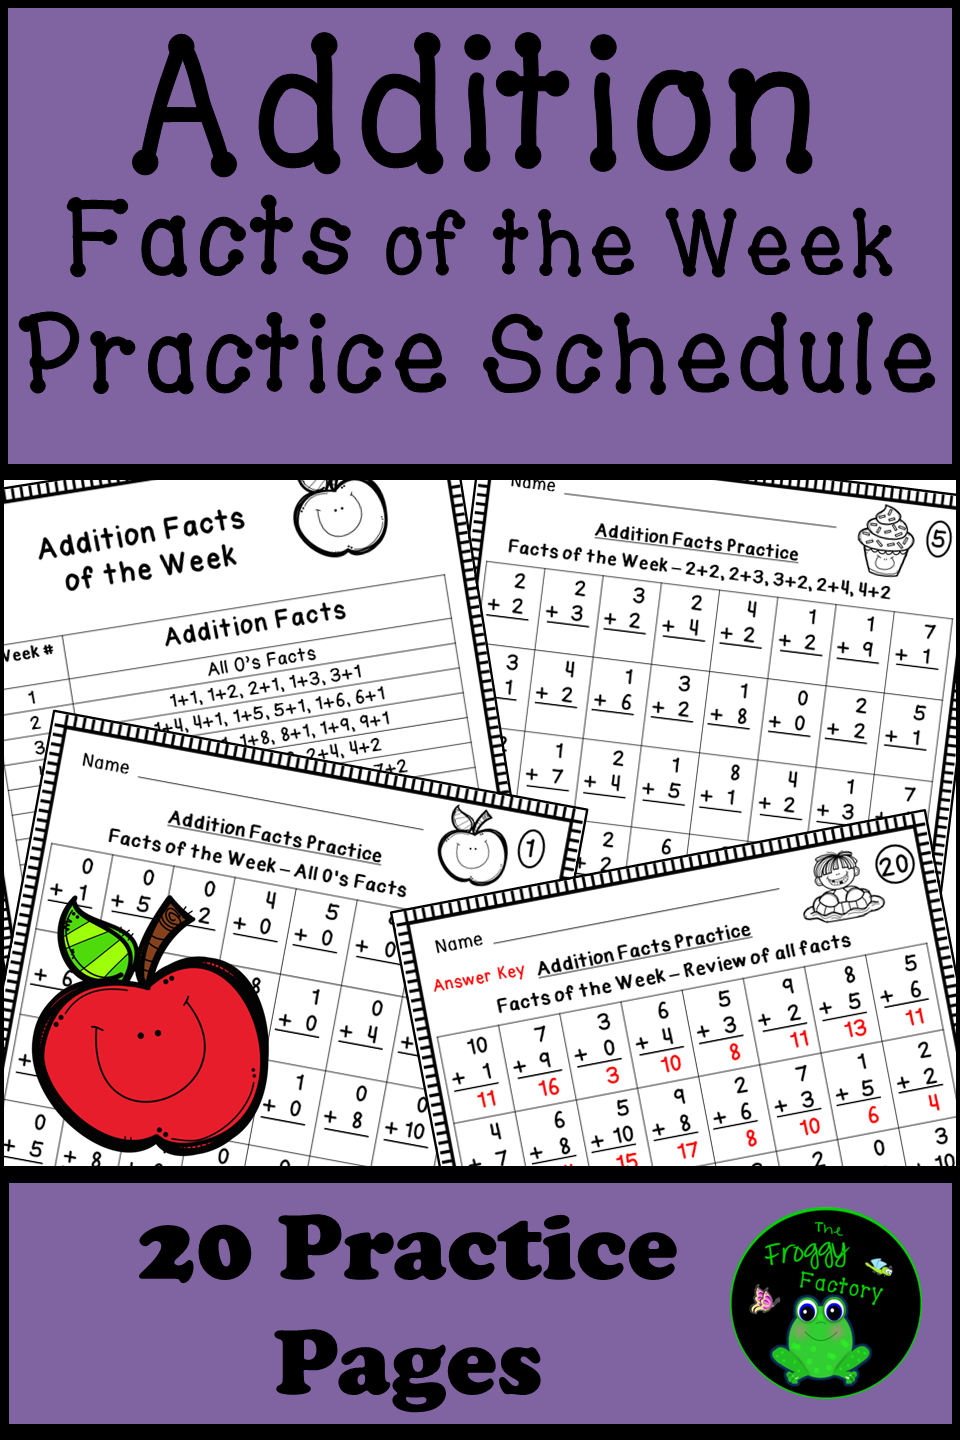 Addition Facts Practice Worksheets and Schedule